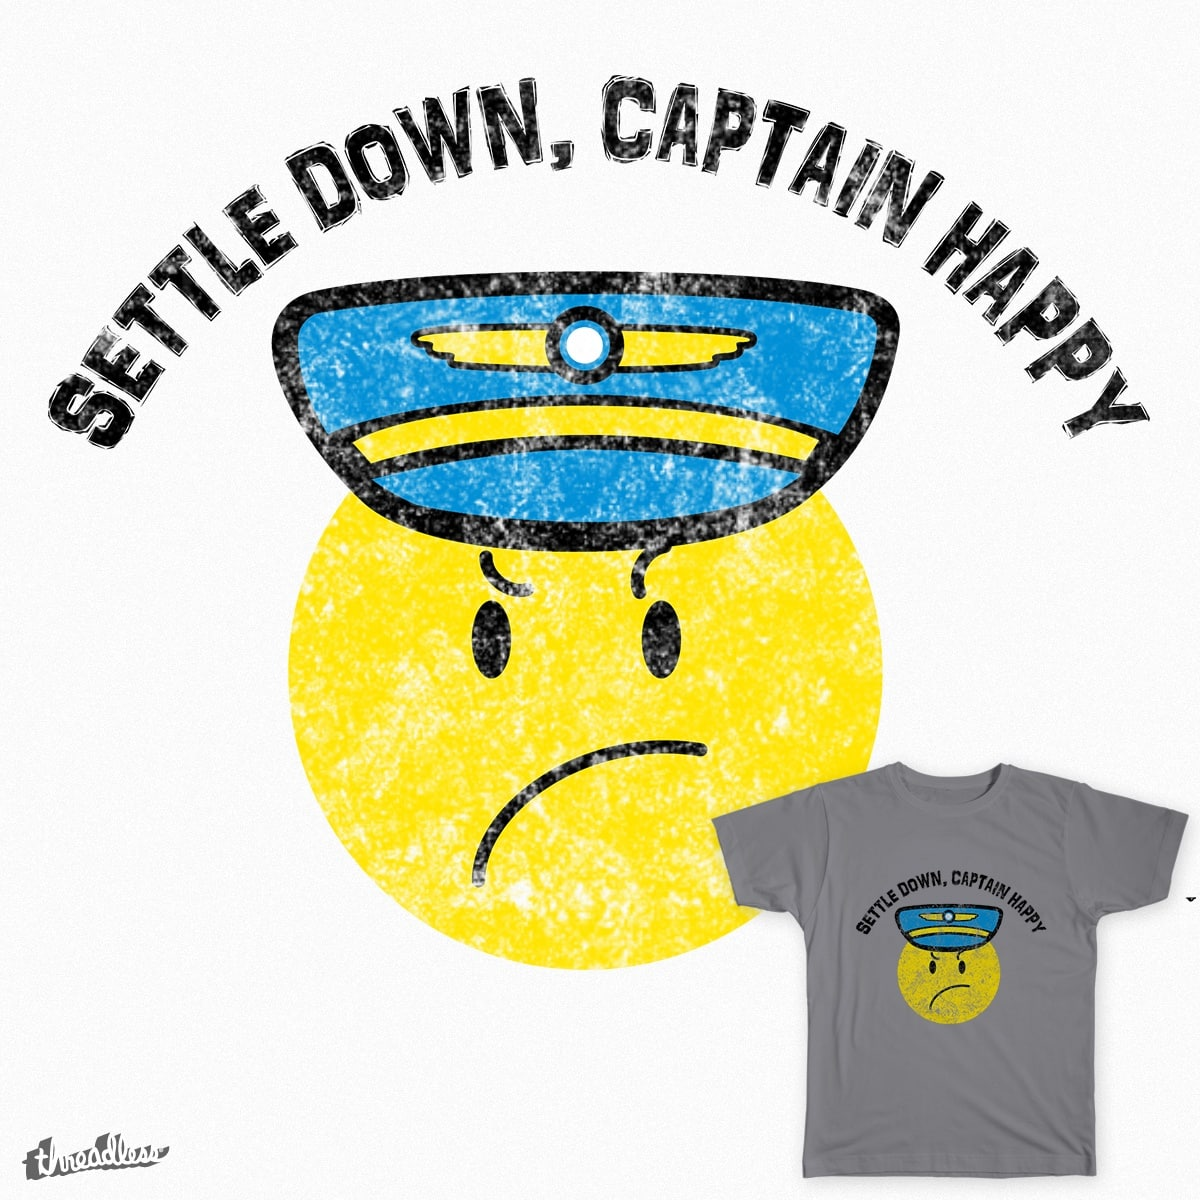 Settle Down, Captain Happy by mike_hormuth on Threadless